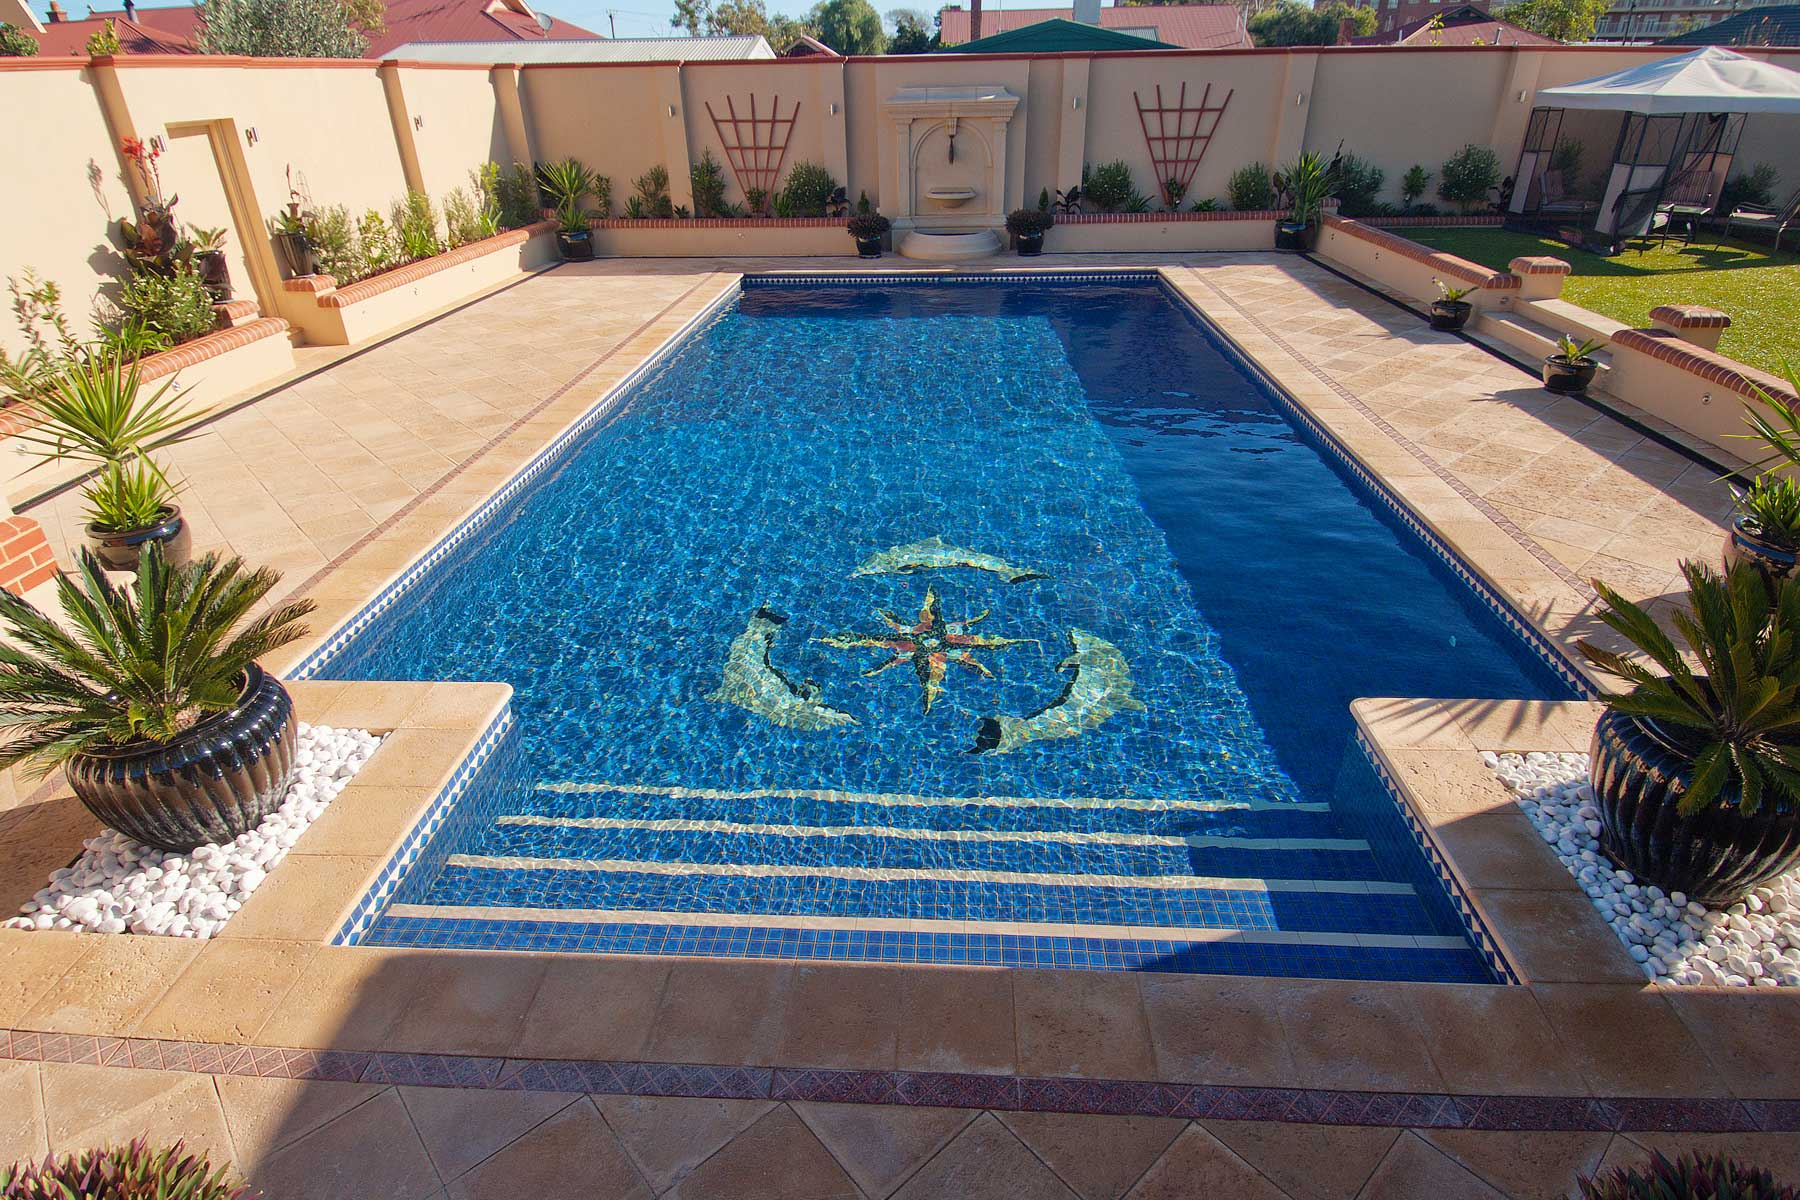 Concrete Pool with Ceramic Design